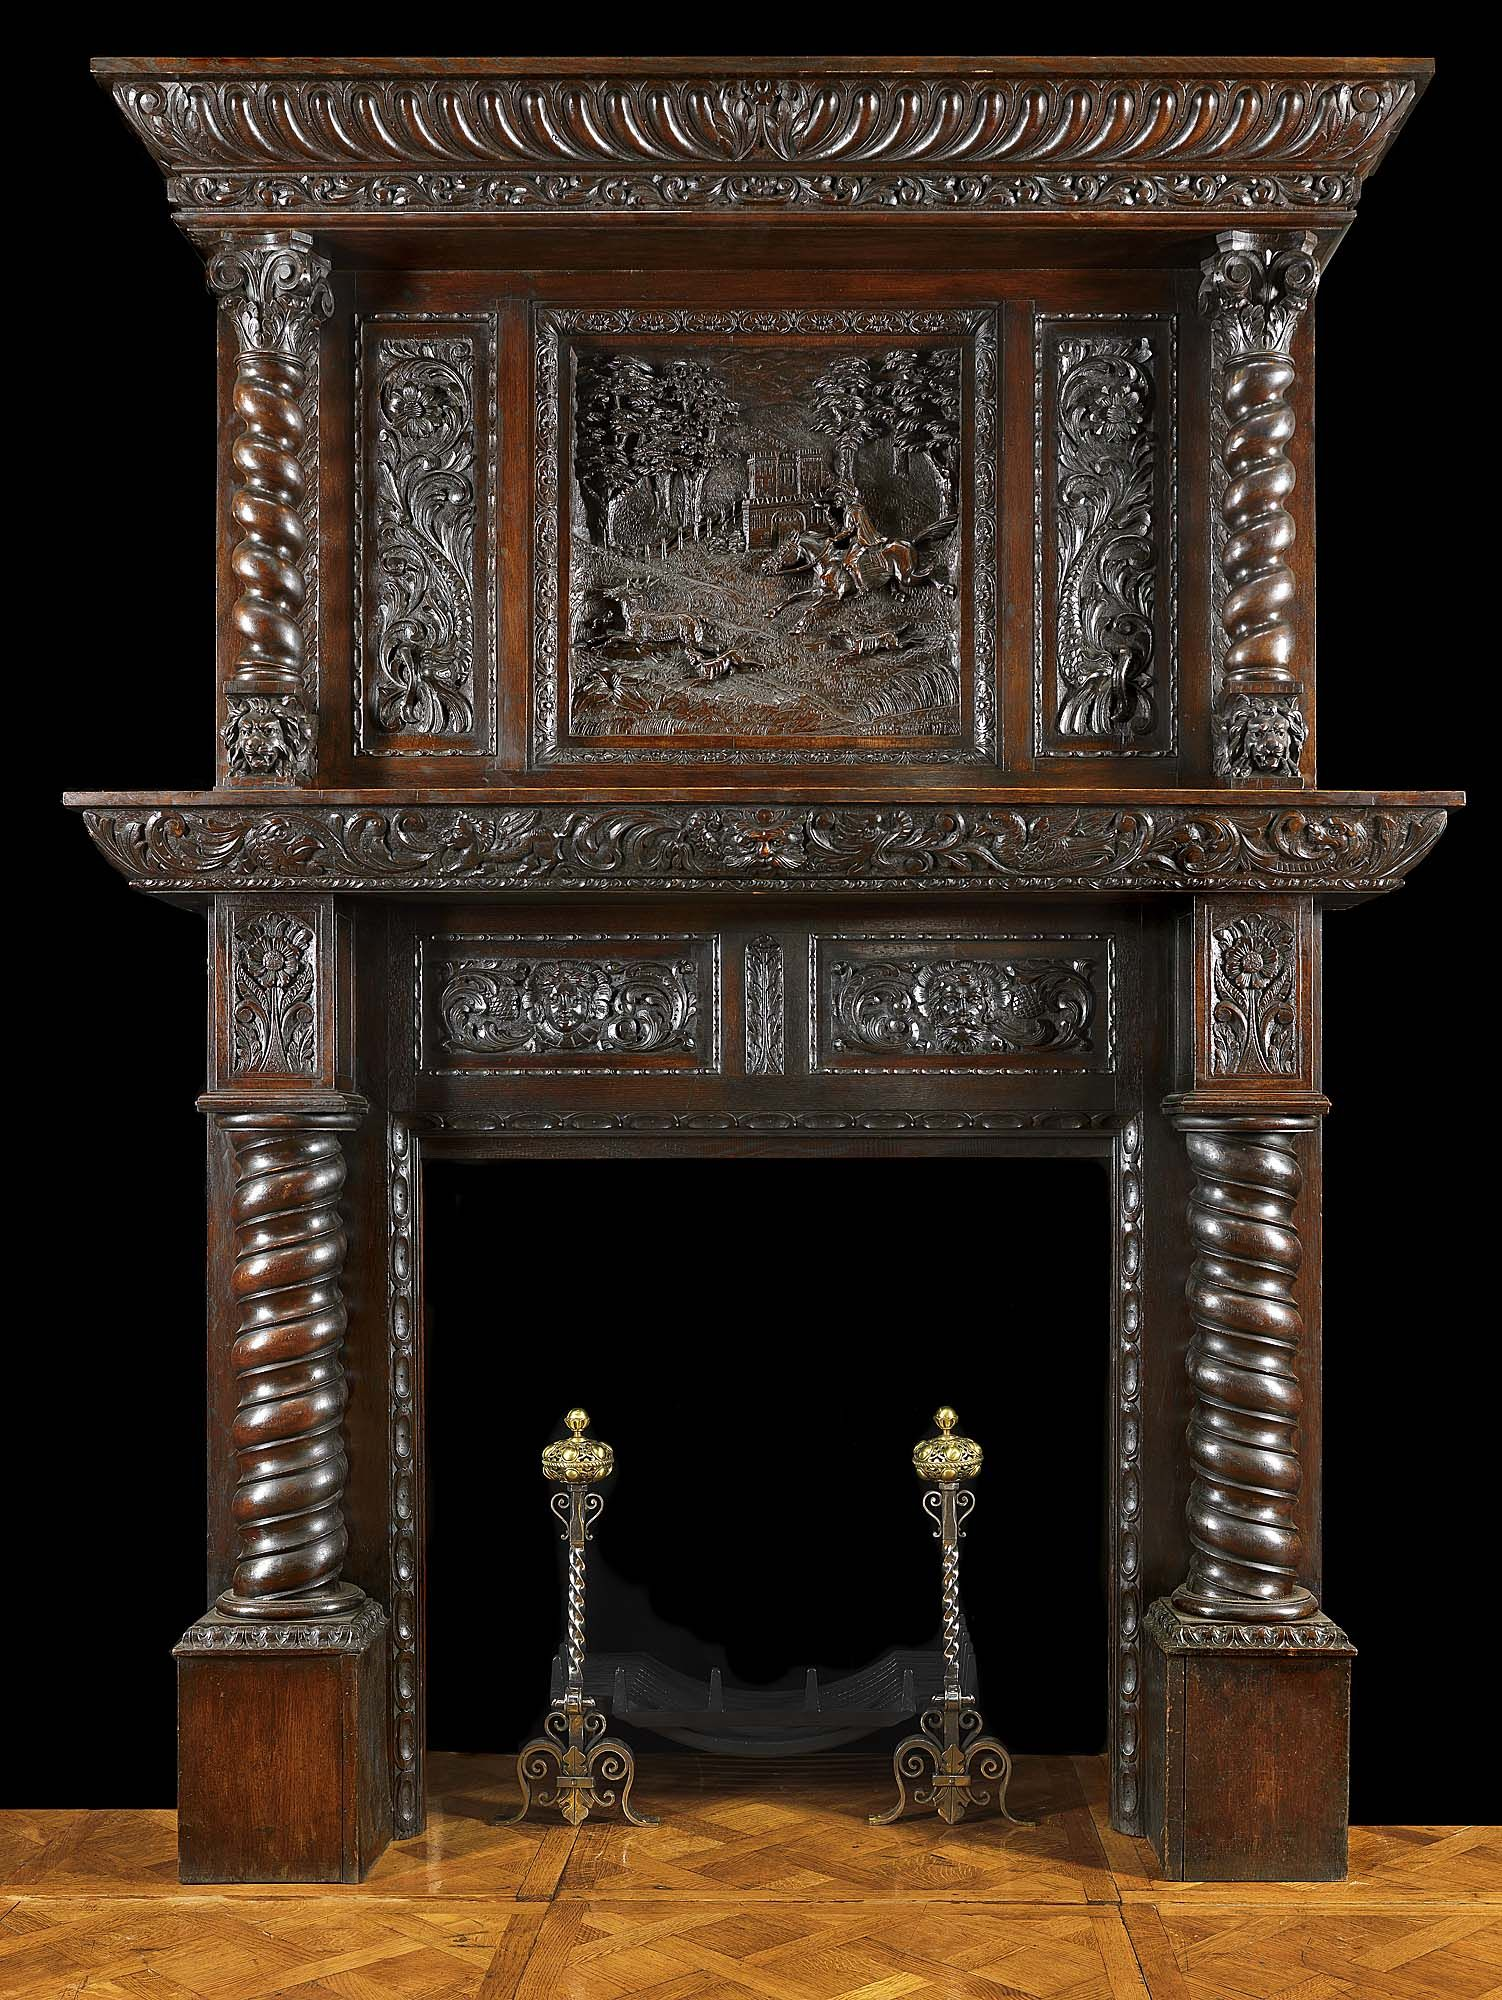 gothic antique fireplace mantels with mirrors